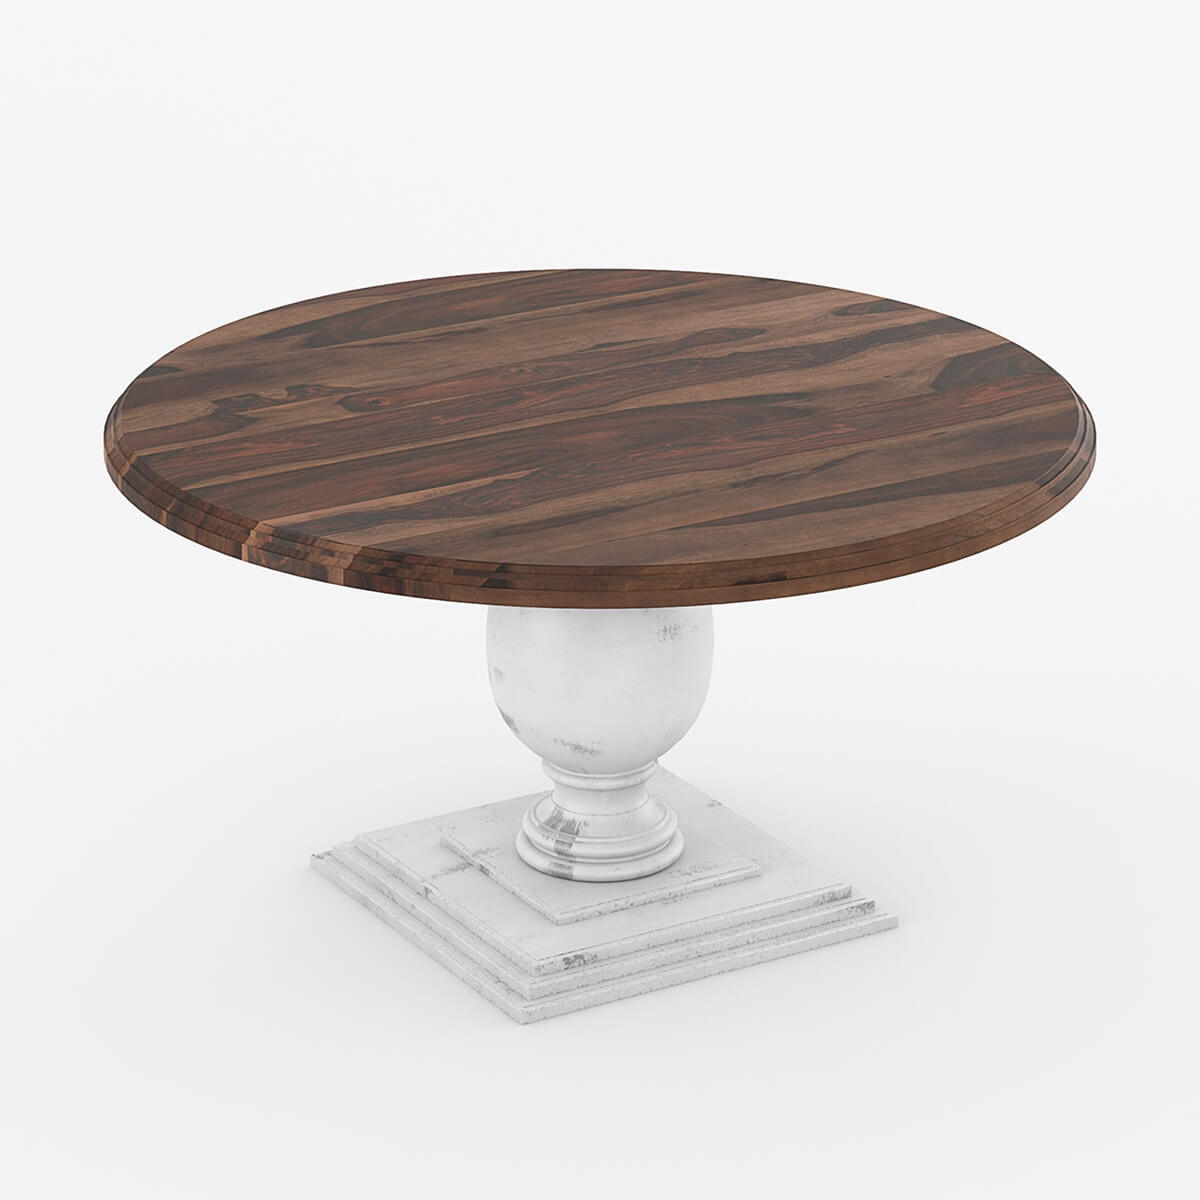 72 Solid Wood Large Pedestal Round Dining Table